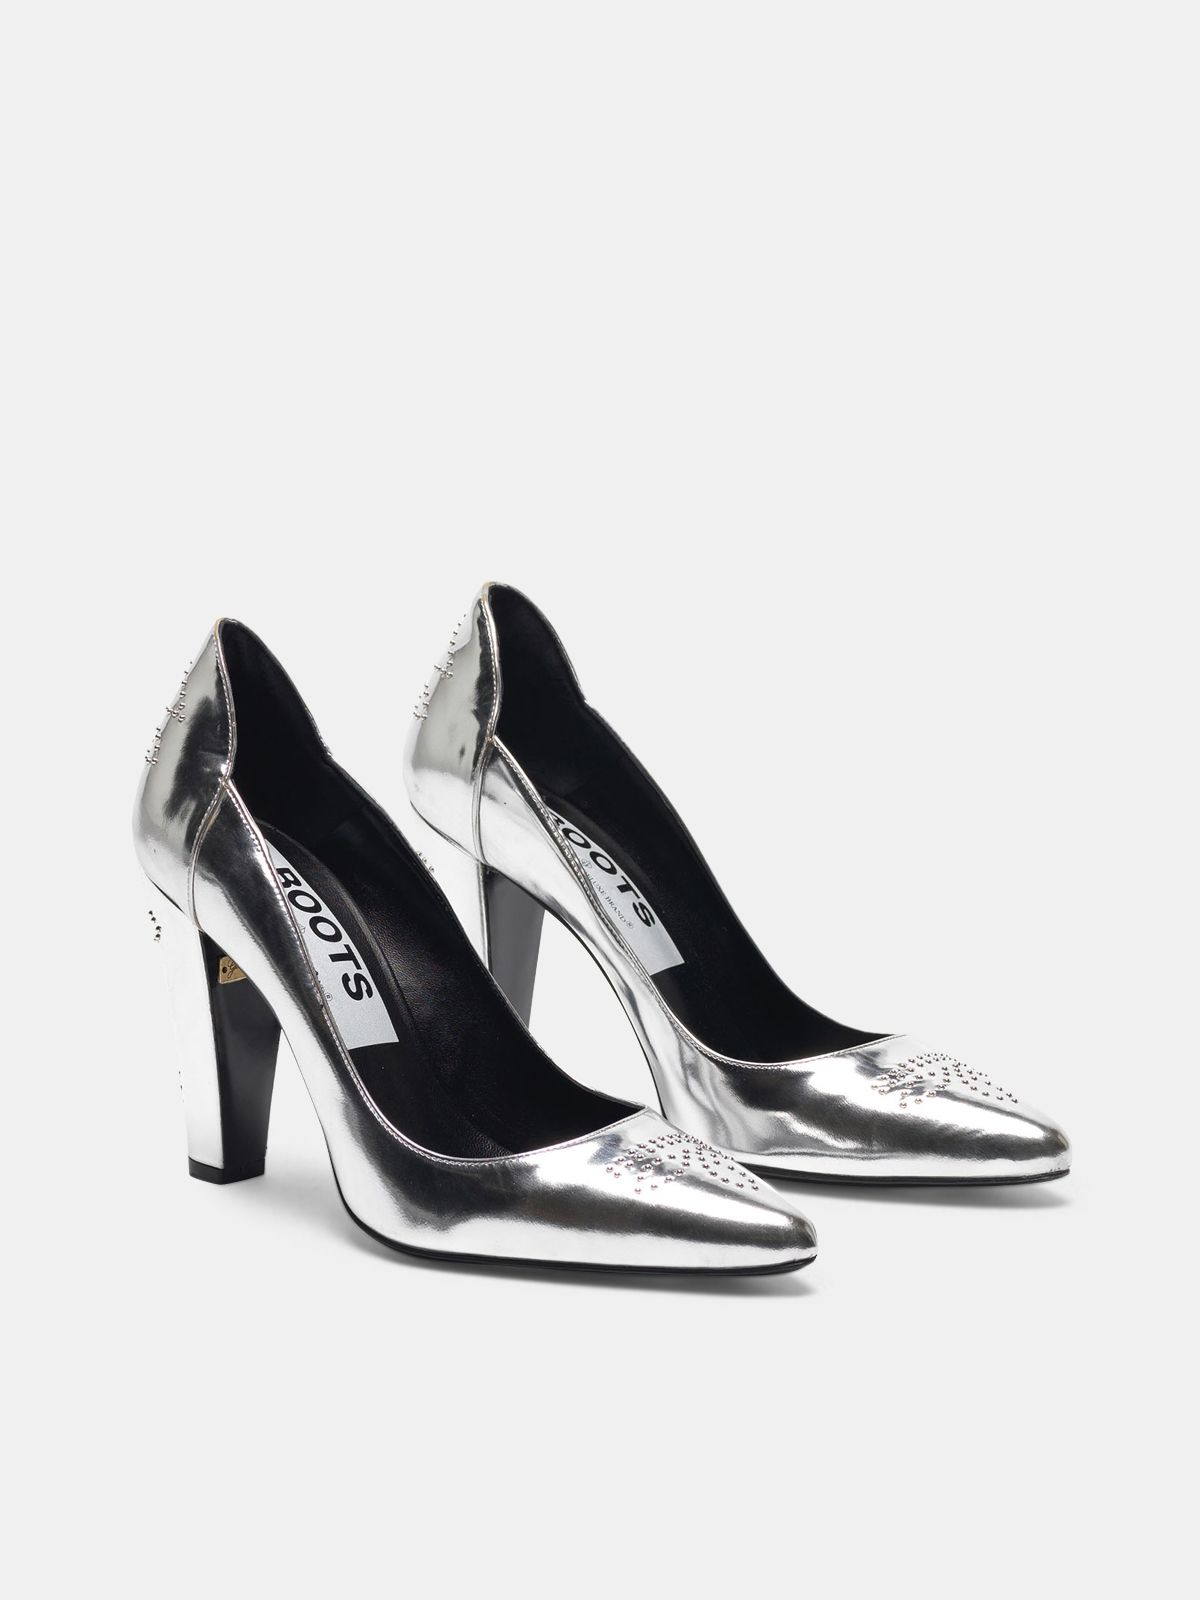 Golden Goose - Silver mirror-finish Gabrielle pump with studs in